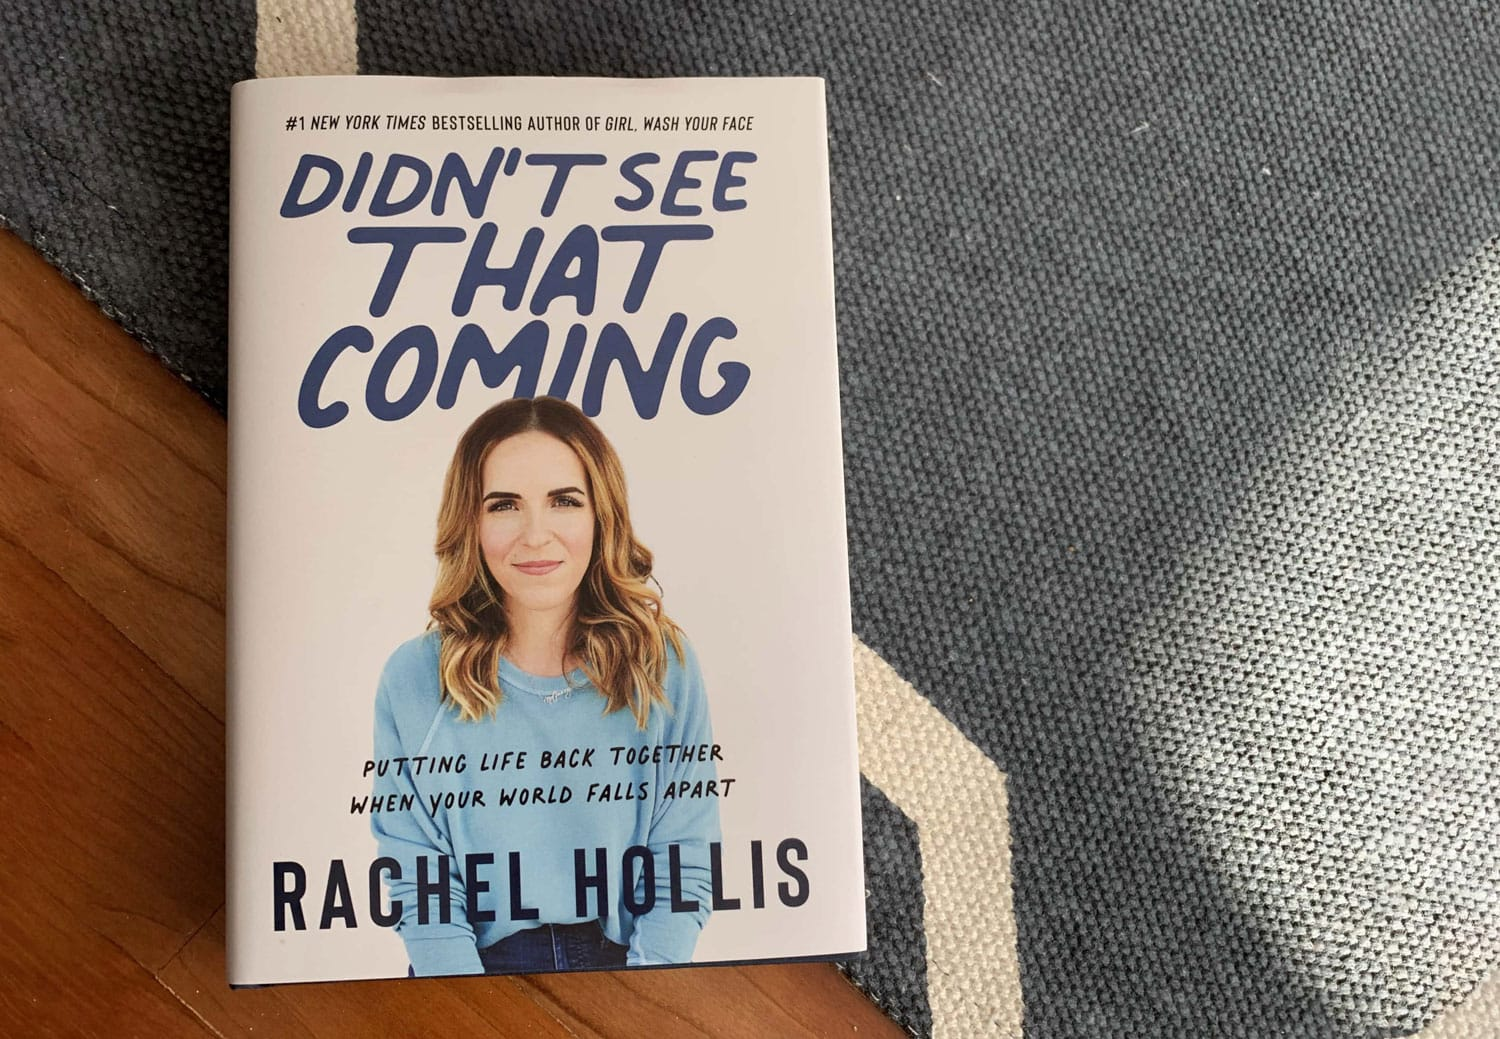 Rachel-Hollis-Didn't-See-That-Coming